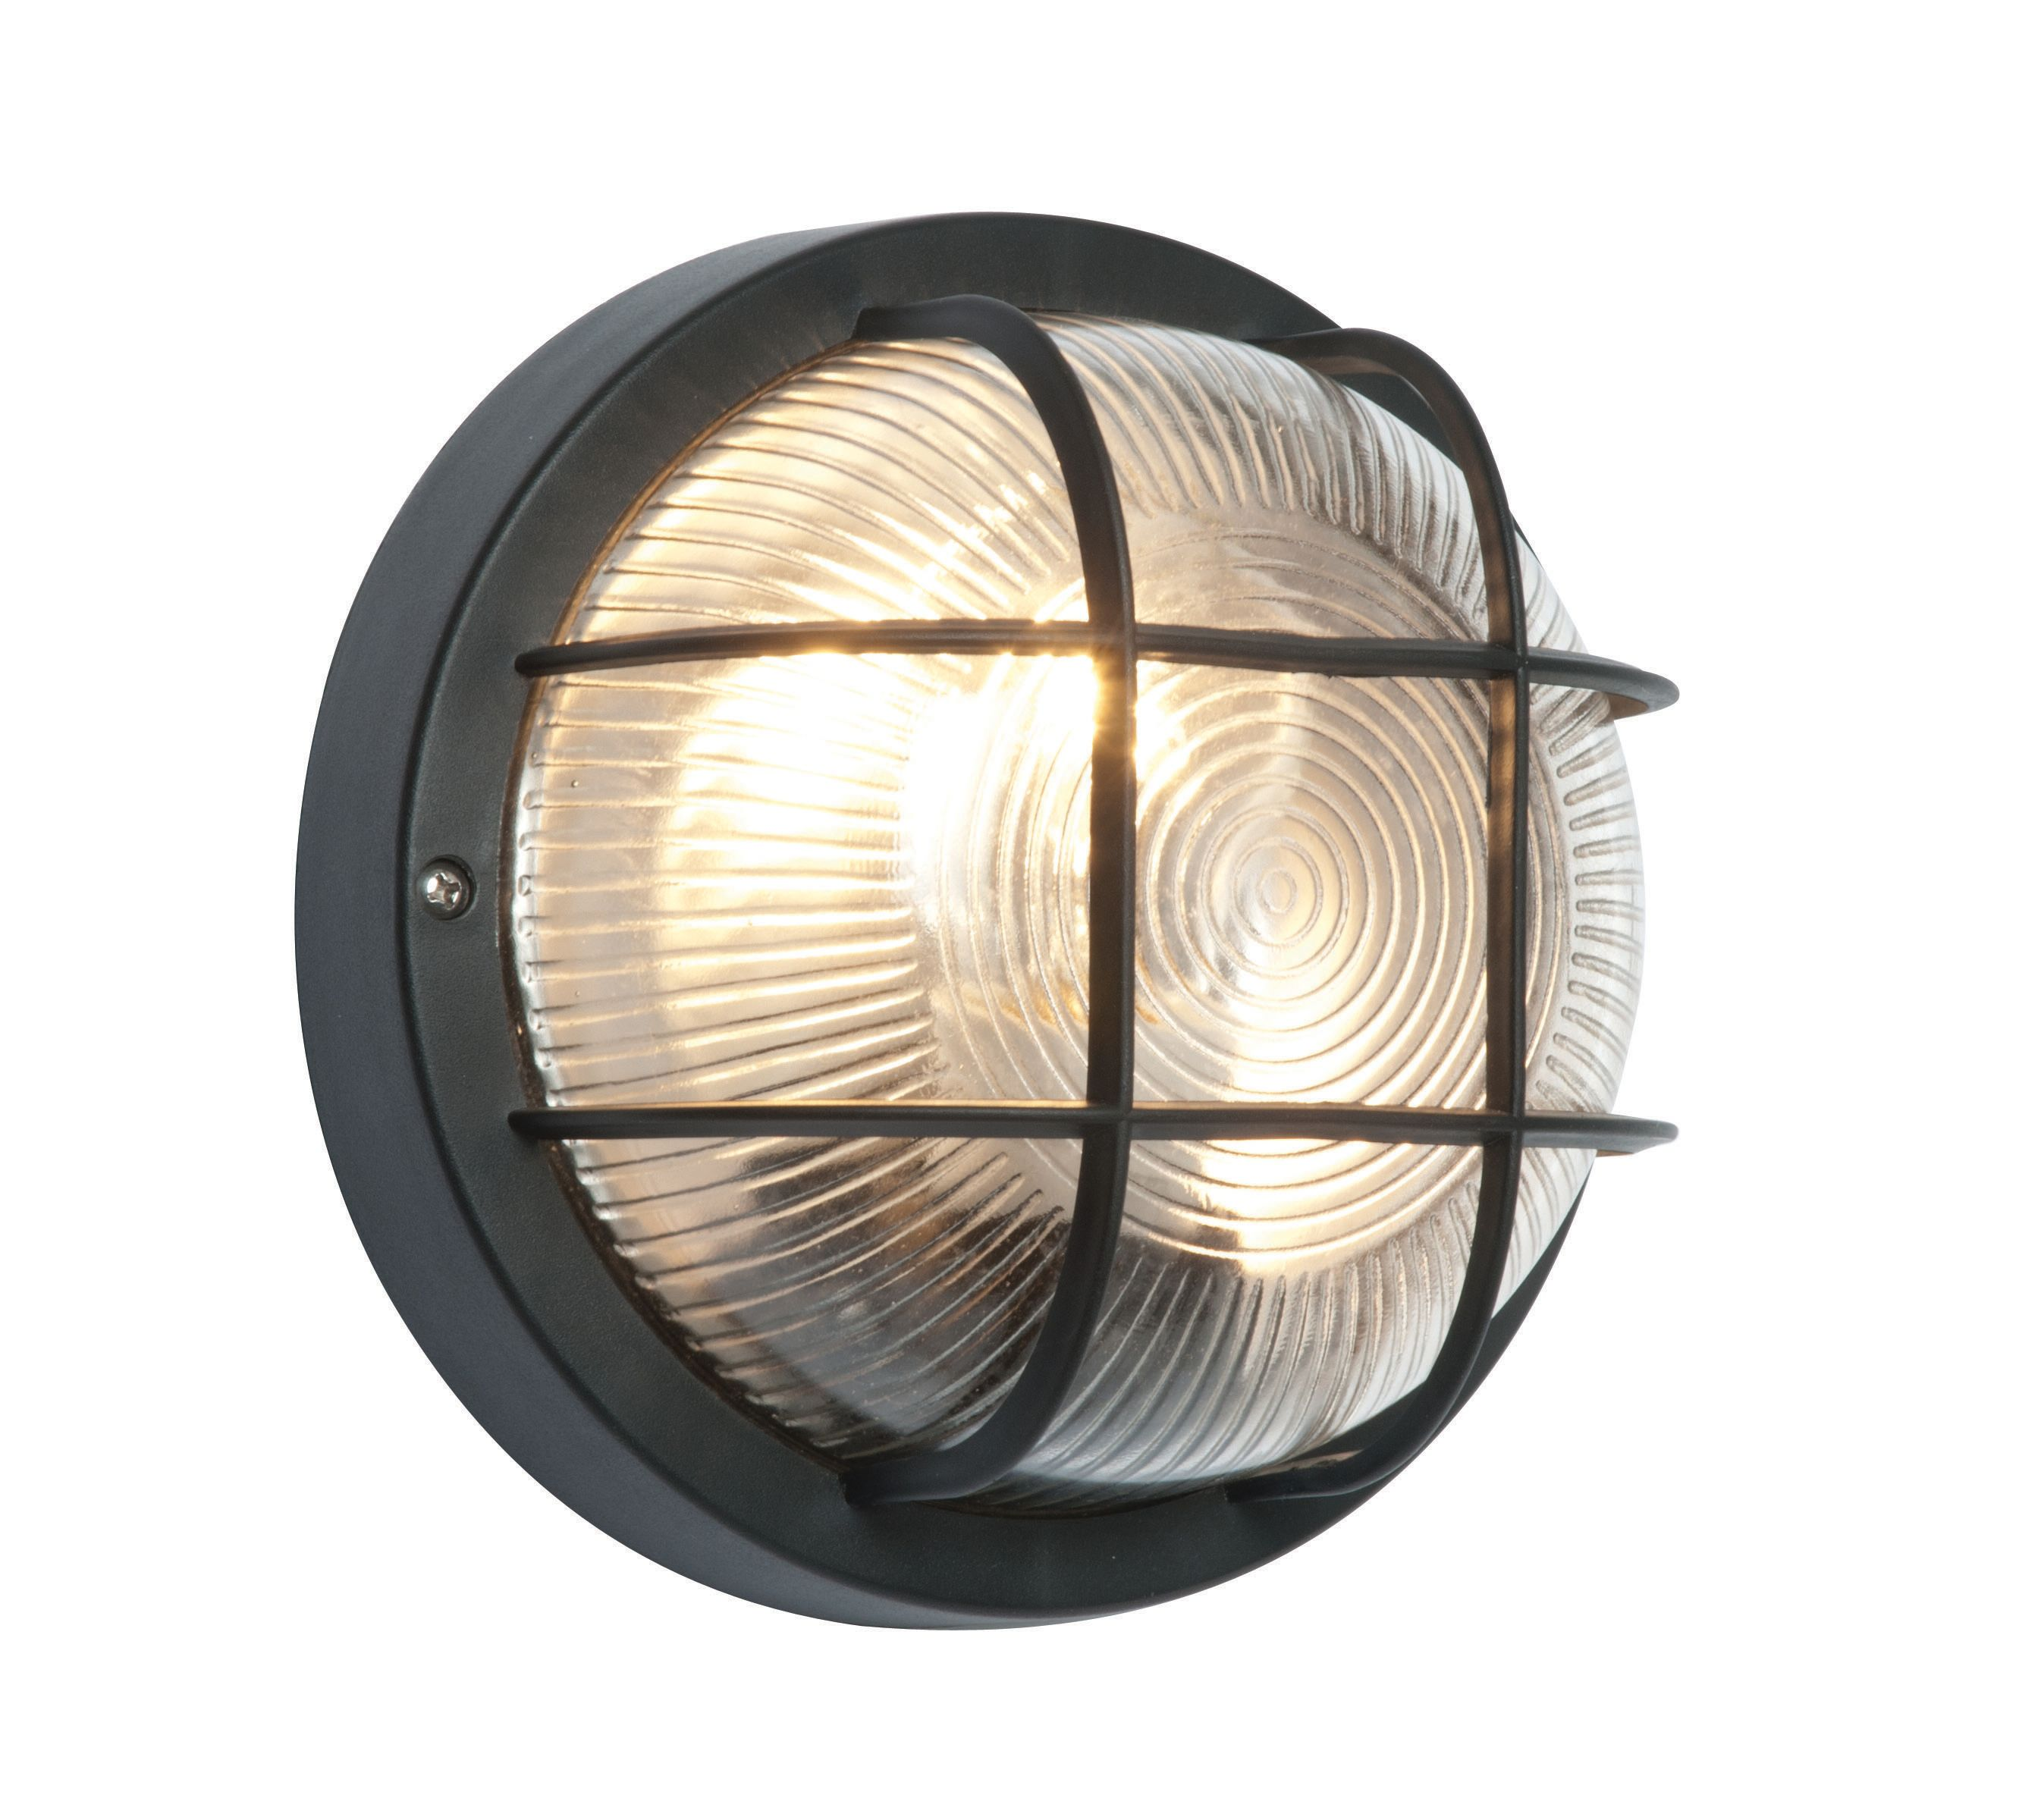 Outside Wall Lights Wickes : Outdoor Lighting - Lighting -Decorating & Interiors Wickes